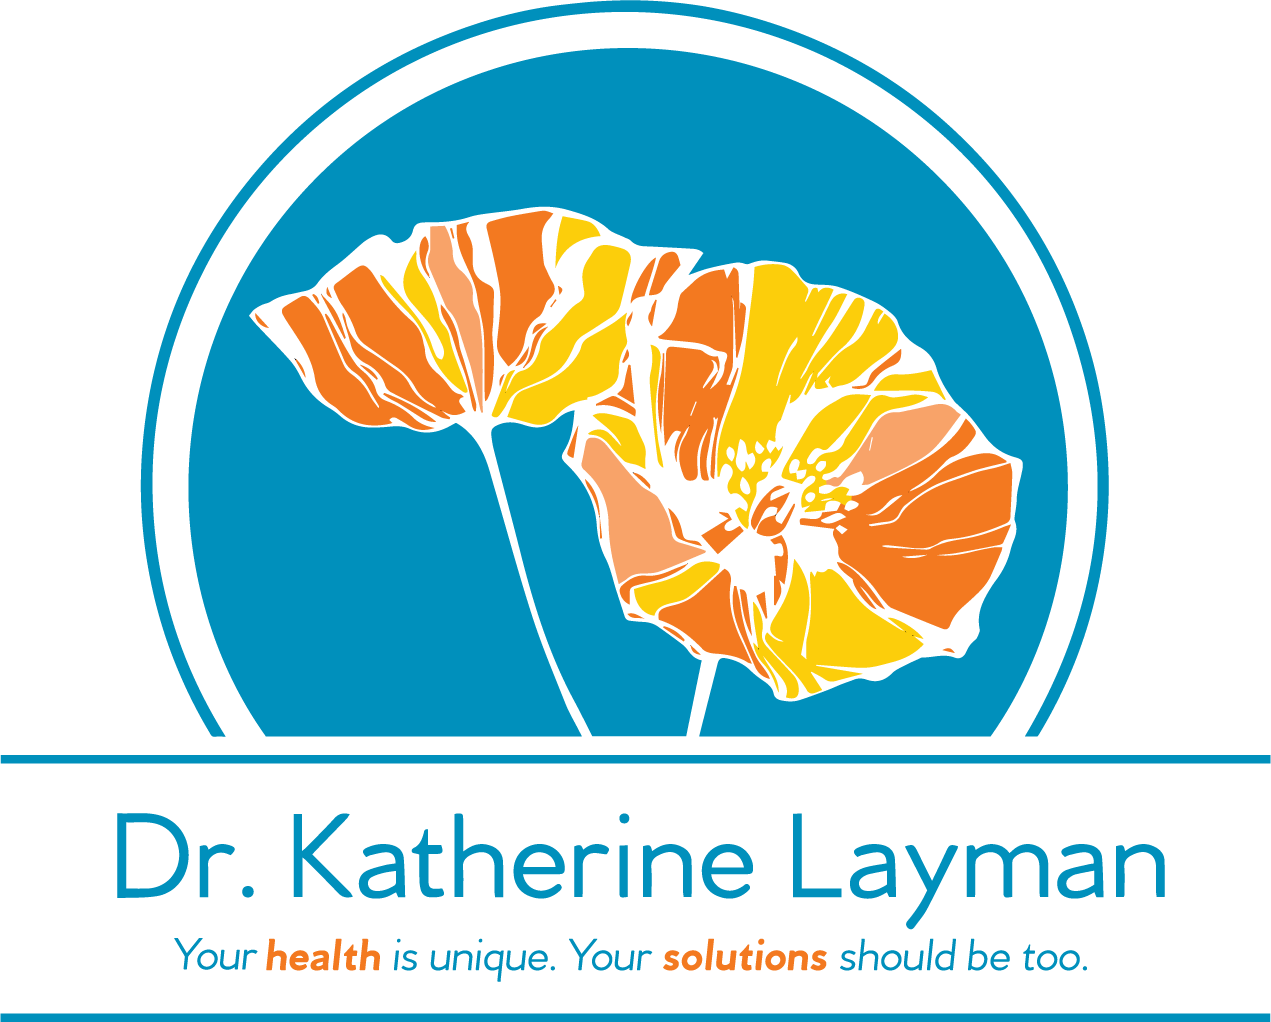 Connecticut Naturopathic Medicine | Dr. Katherine Layman | Integrative Pediatric Care | Functional & Holistic Medicine